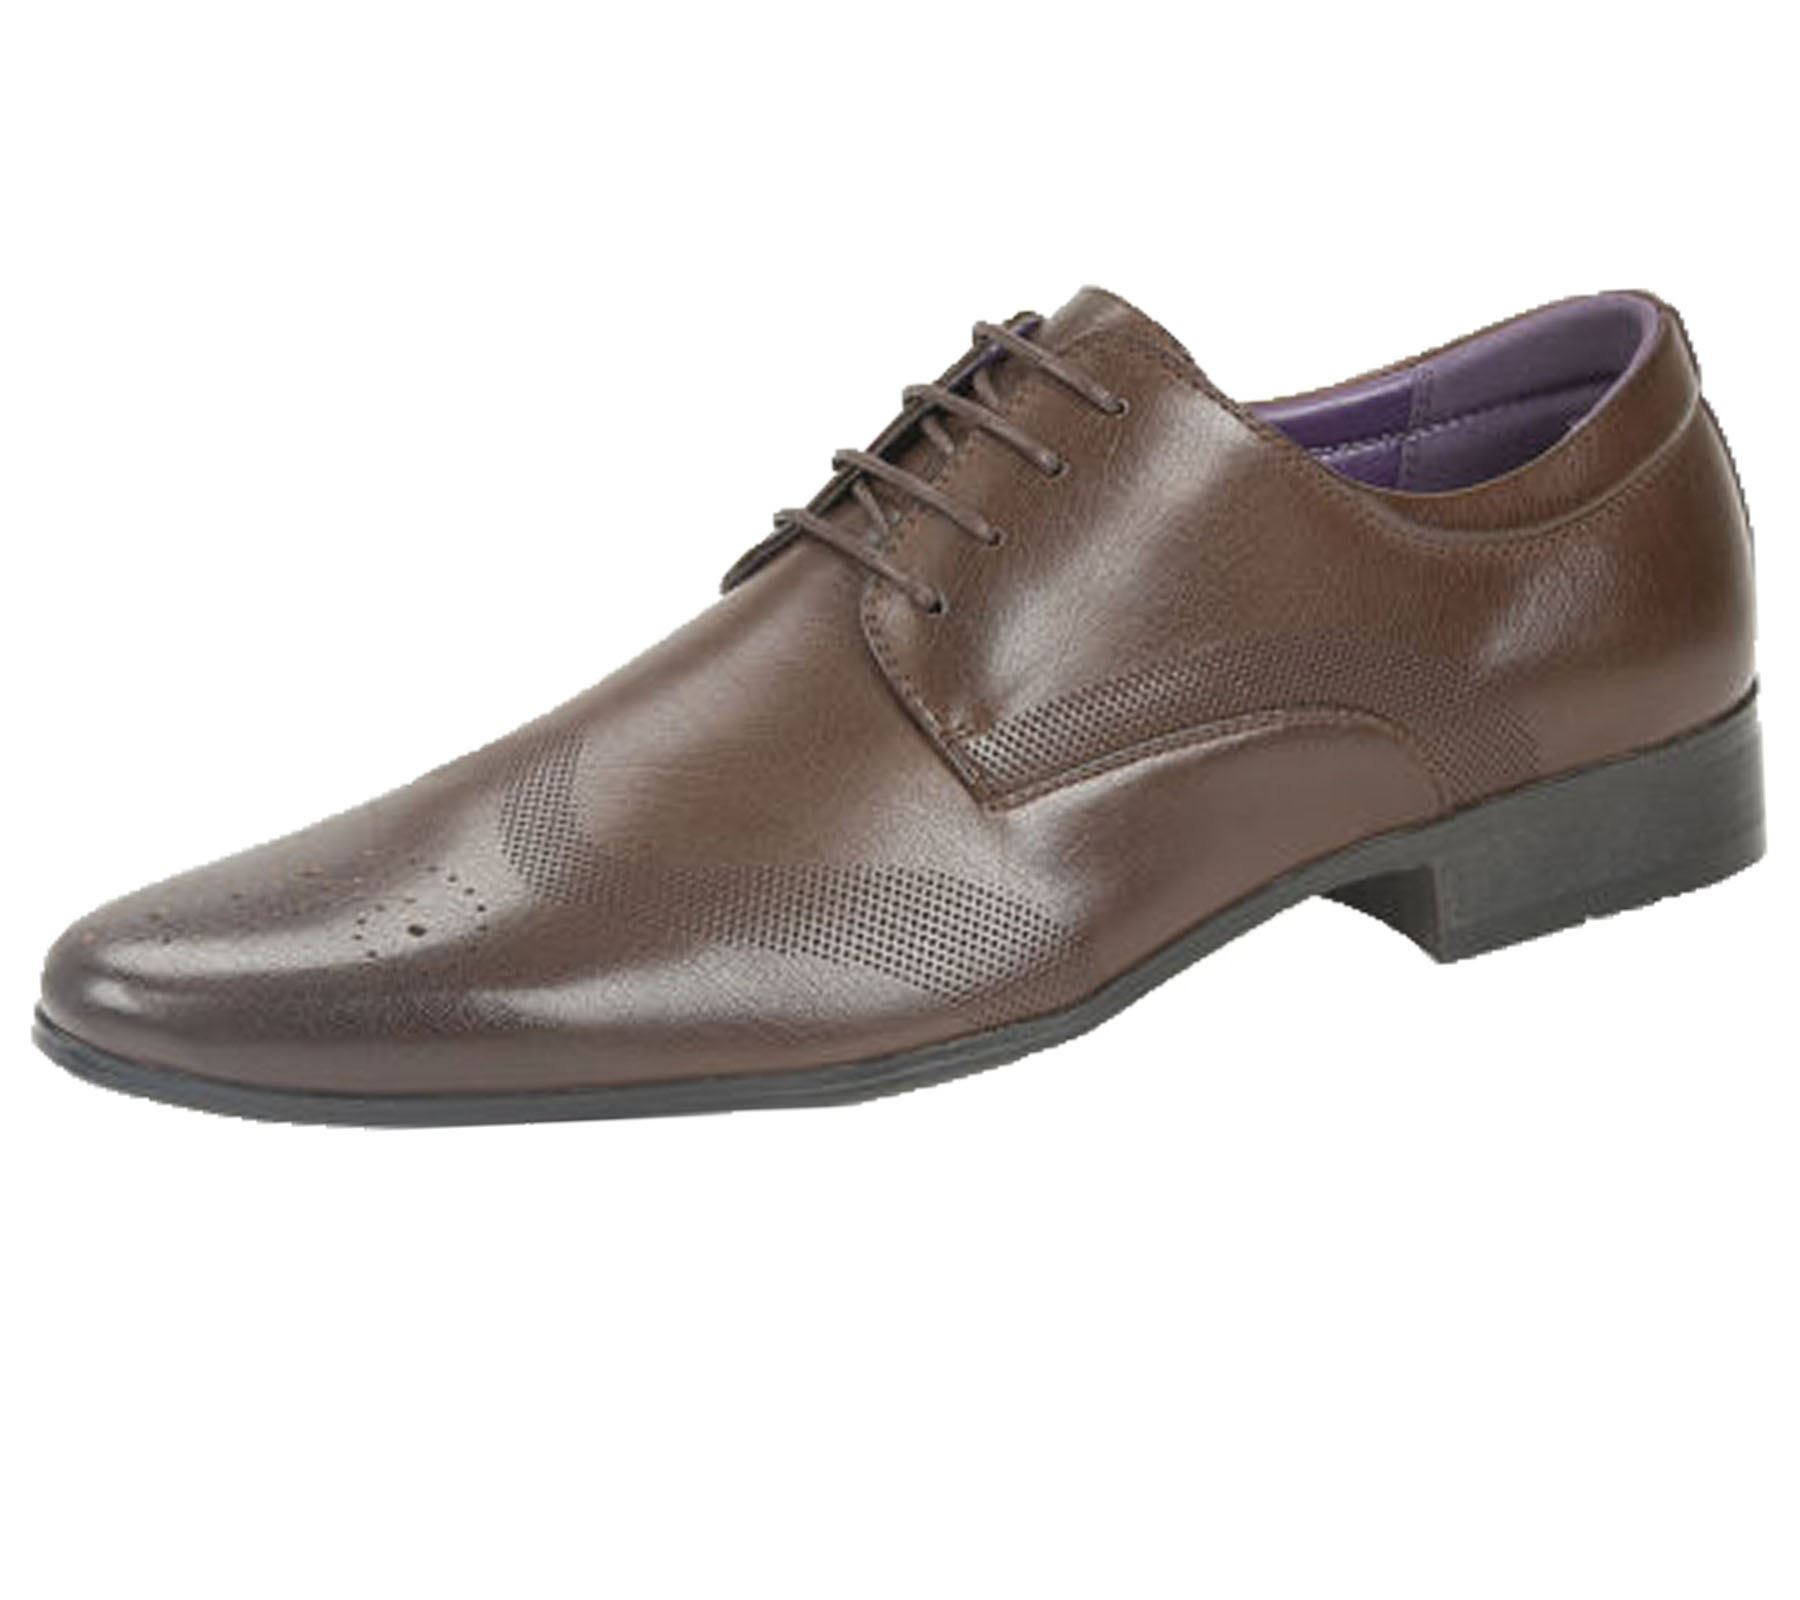 Mens-Brogues-Shoes-Office-Wedding-Formal-Smart-Dress-Shoes-New-Size miniatura 10